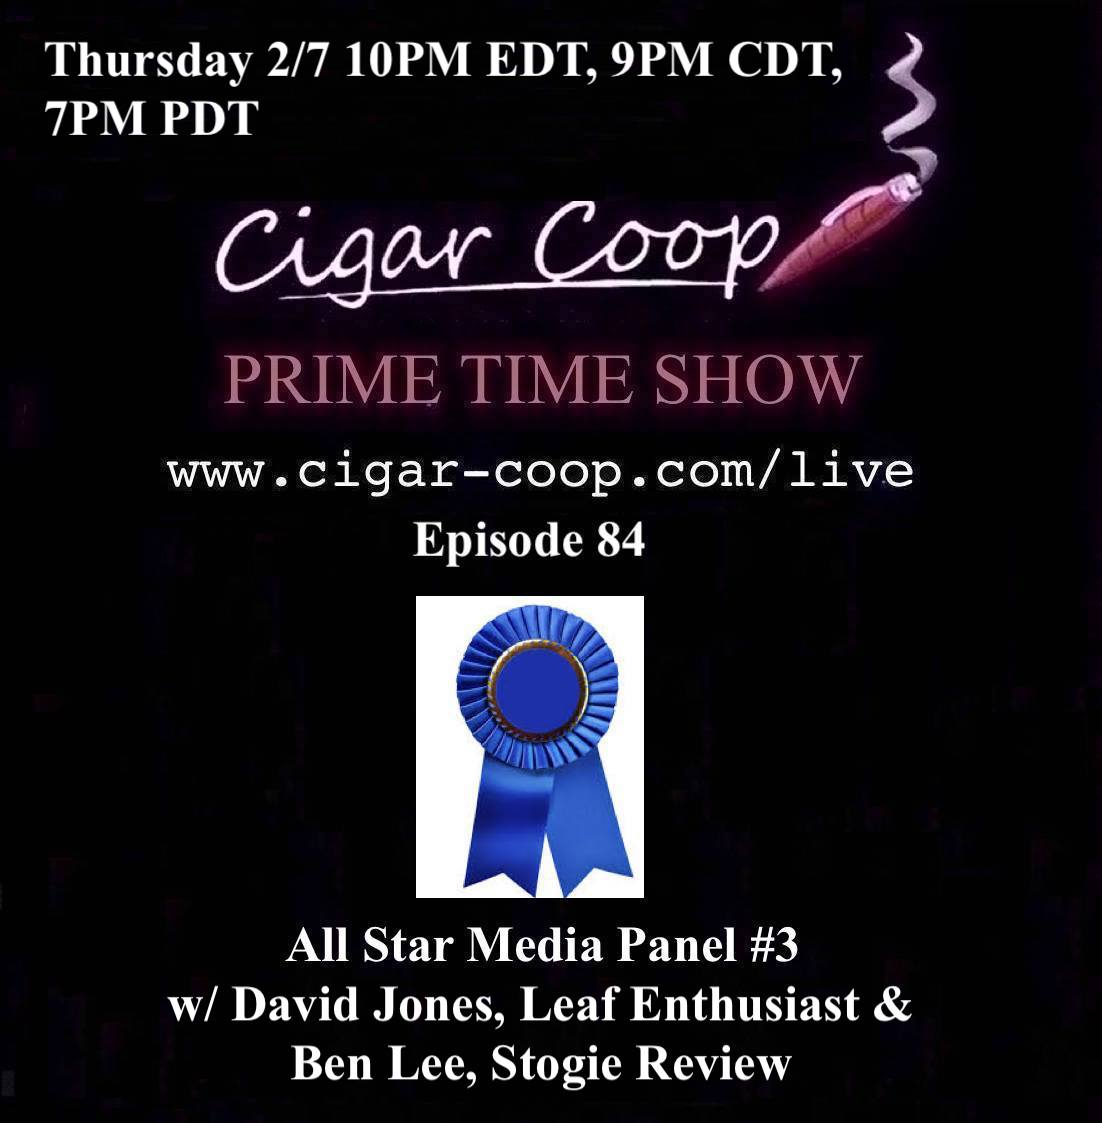 Announcement: Prime Time Episode 84: All Star Media Panel #3